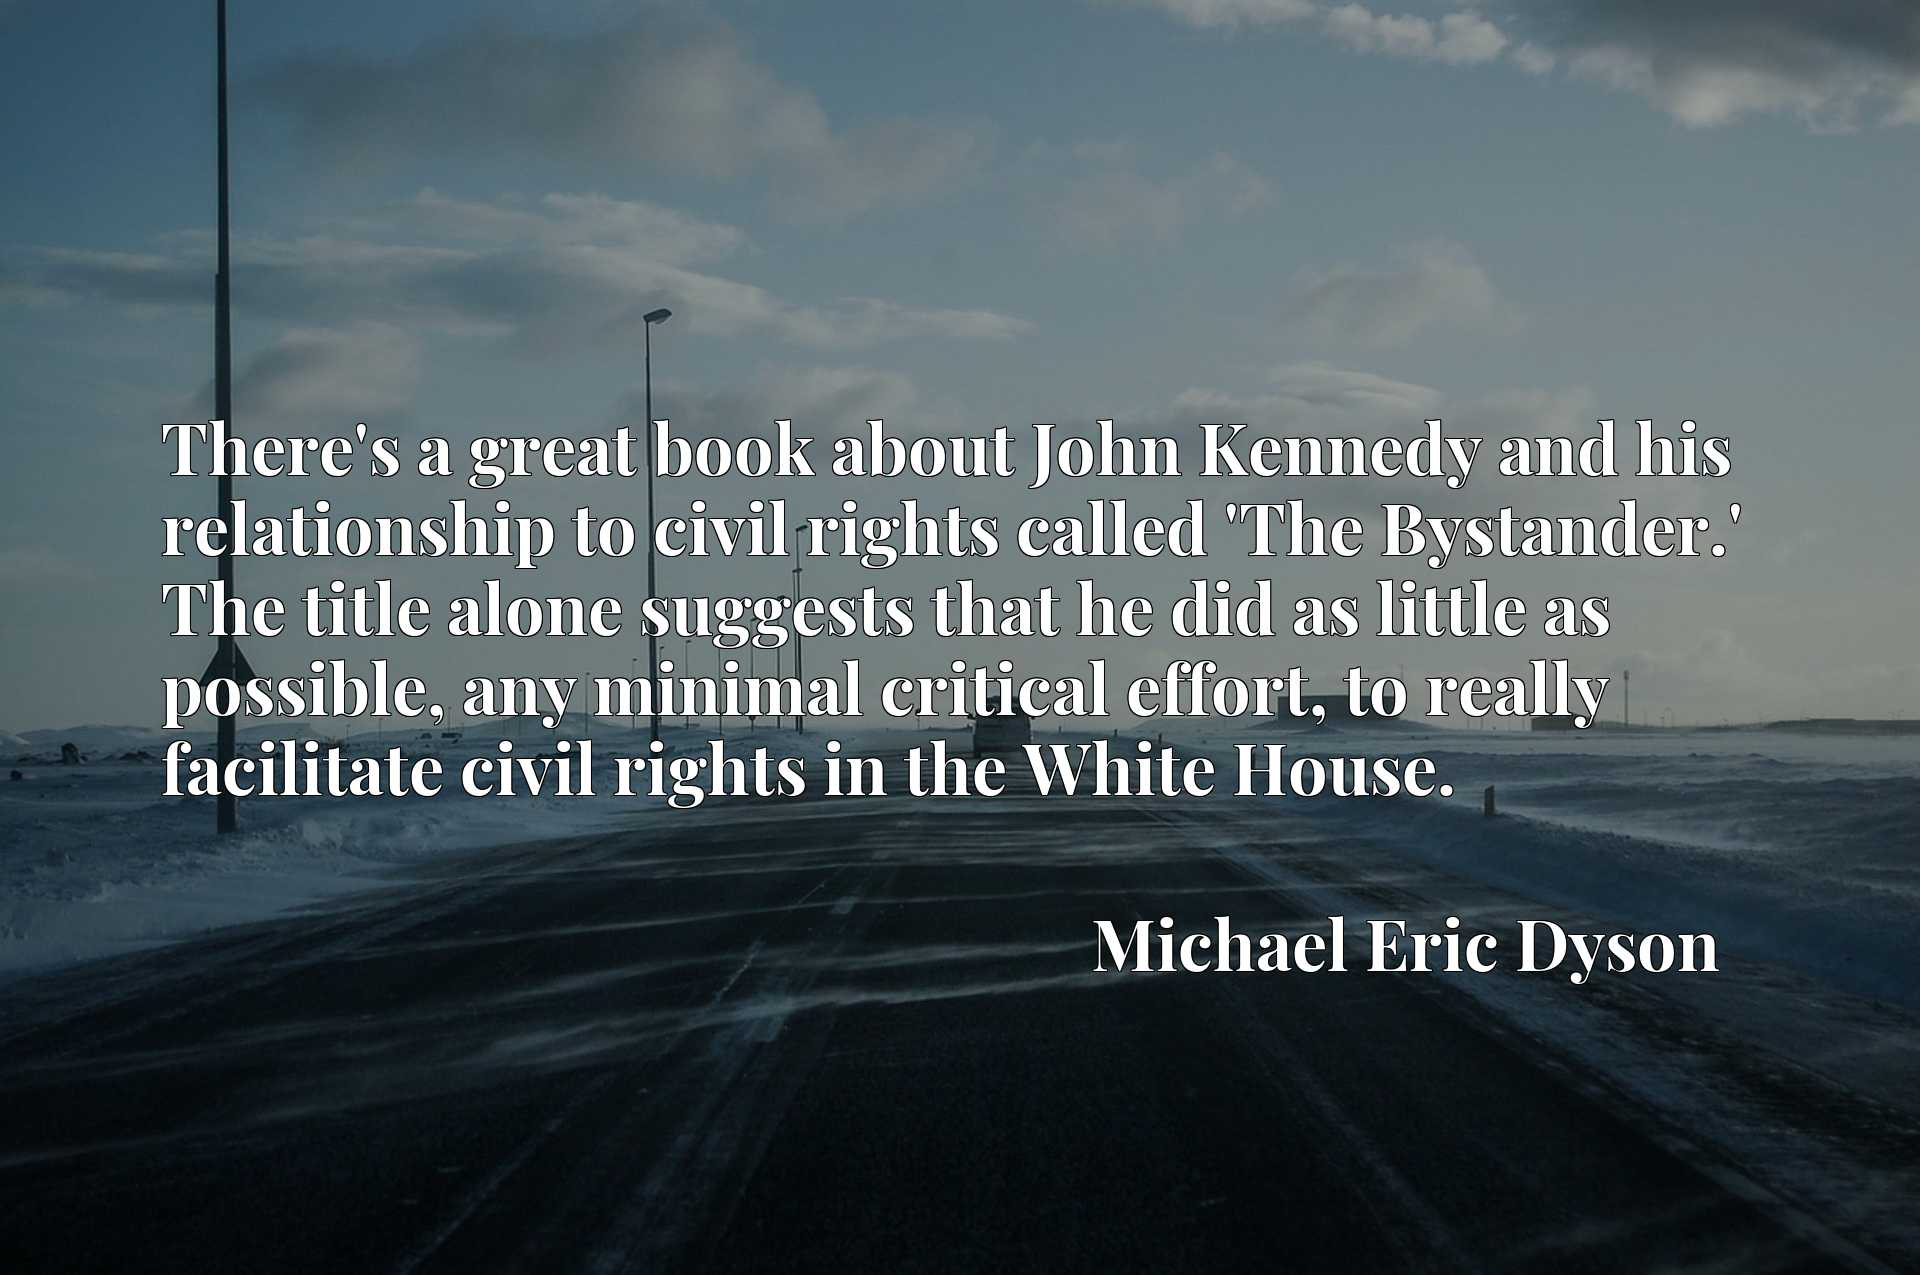 There's a great book about John Kennedy and his relationship to civil rights called 'The Bystander.' The title alone suggests that he did as little as possible, any minimal critical effort, to really facilitate civil rights in the White House.